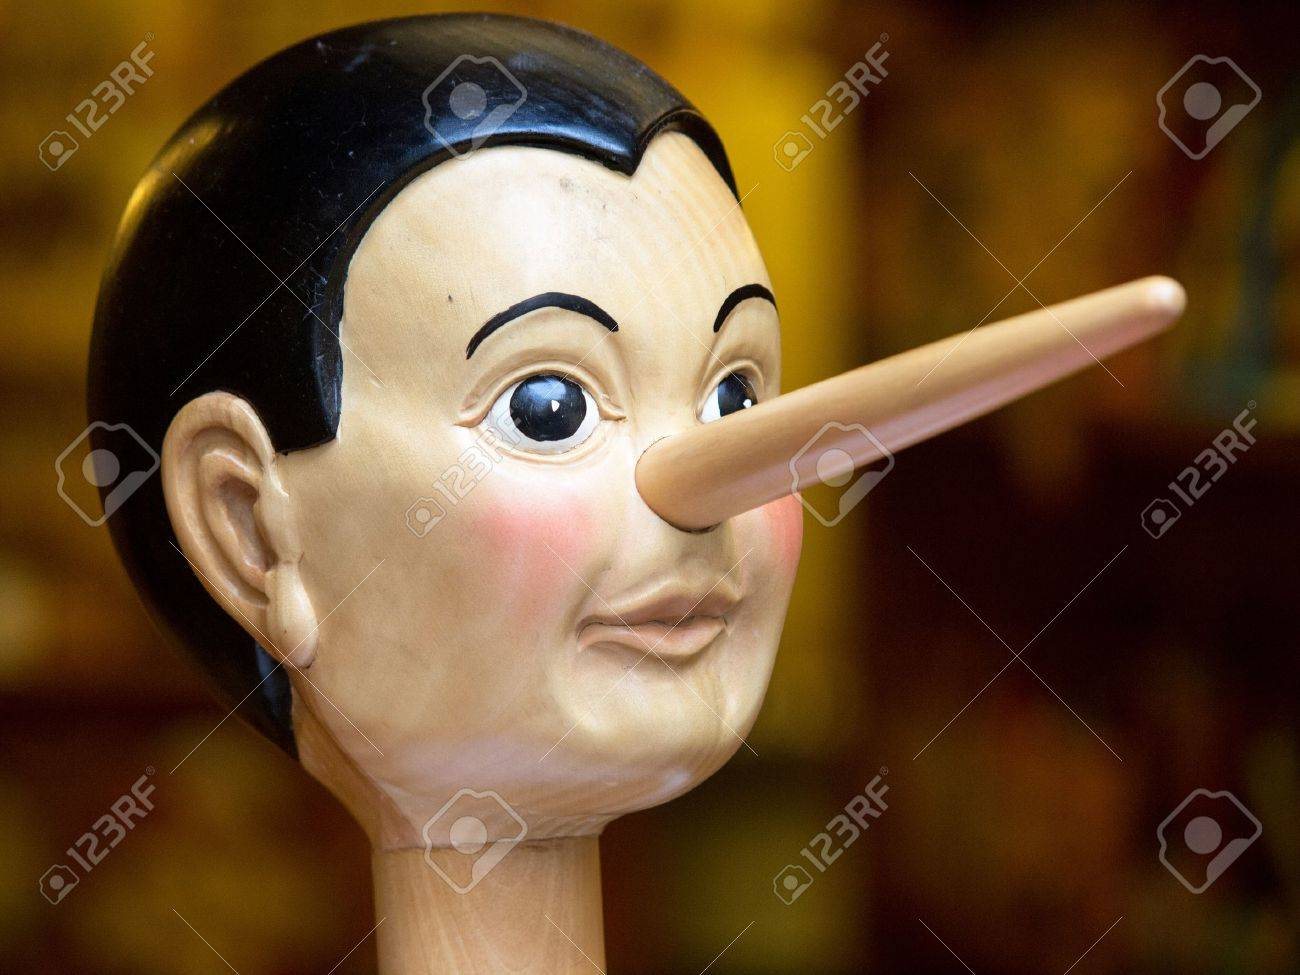 Wooden pinocchio doll with his long nose - 16240527